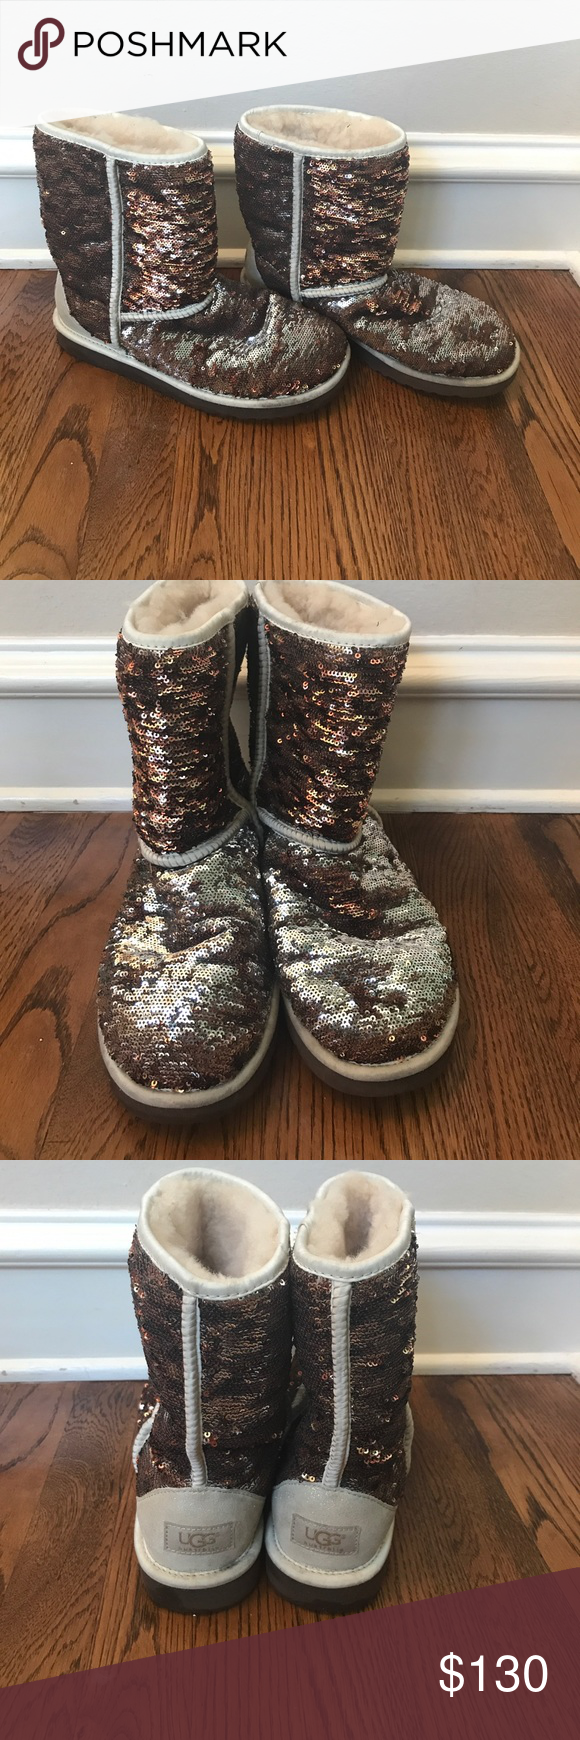 Ugg boots. *color changing* Barely work ugg boots. Covered in sequins that change colors between silver and brown. Soles are in great condition as well as ...